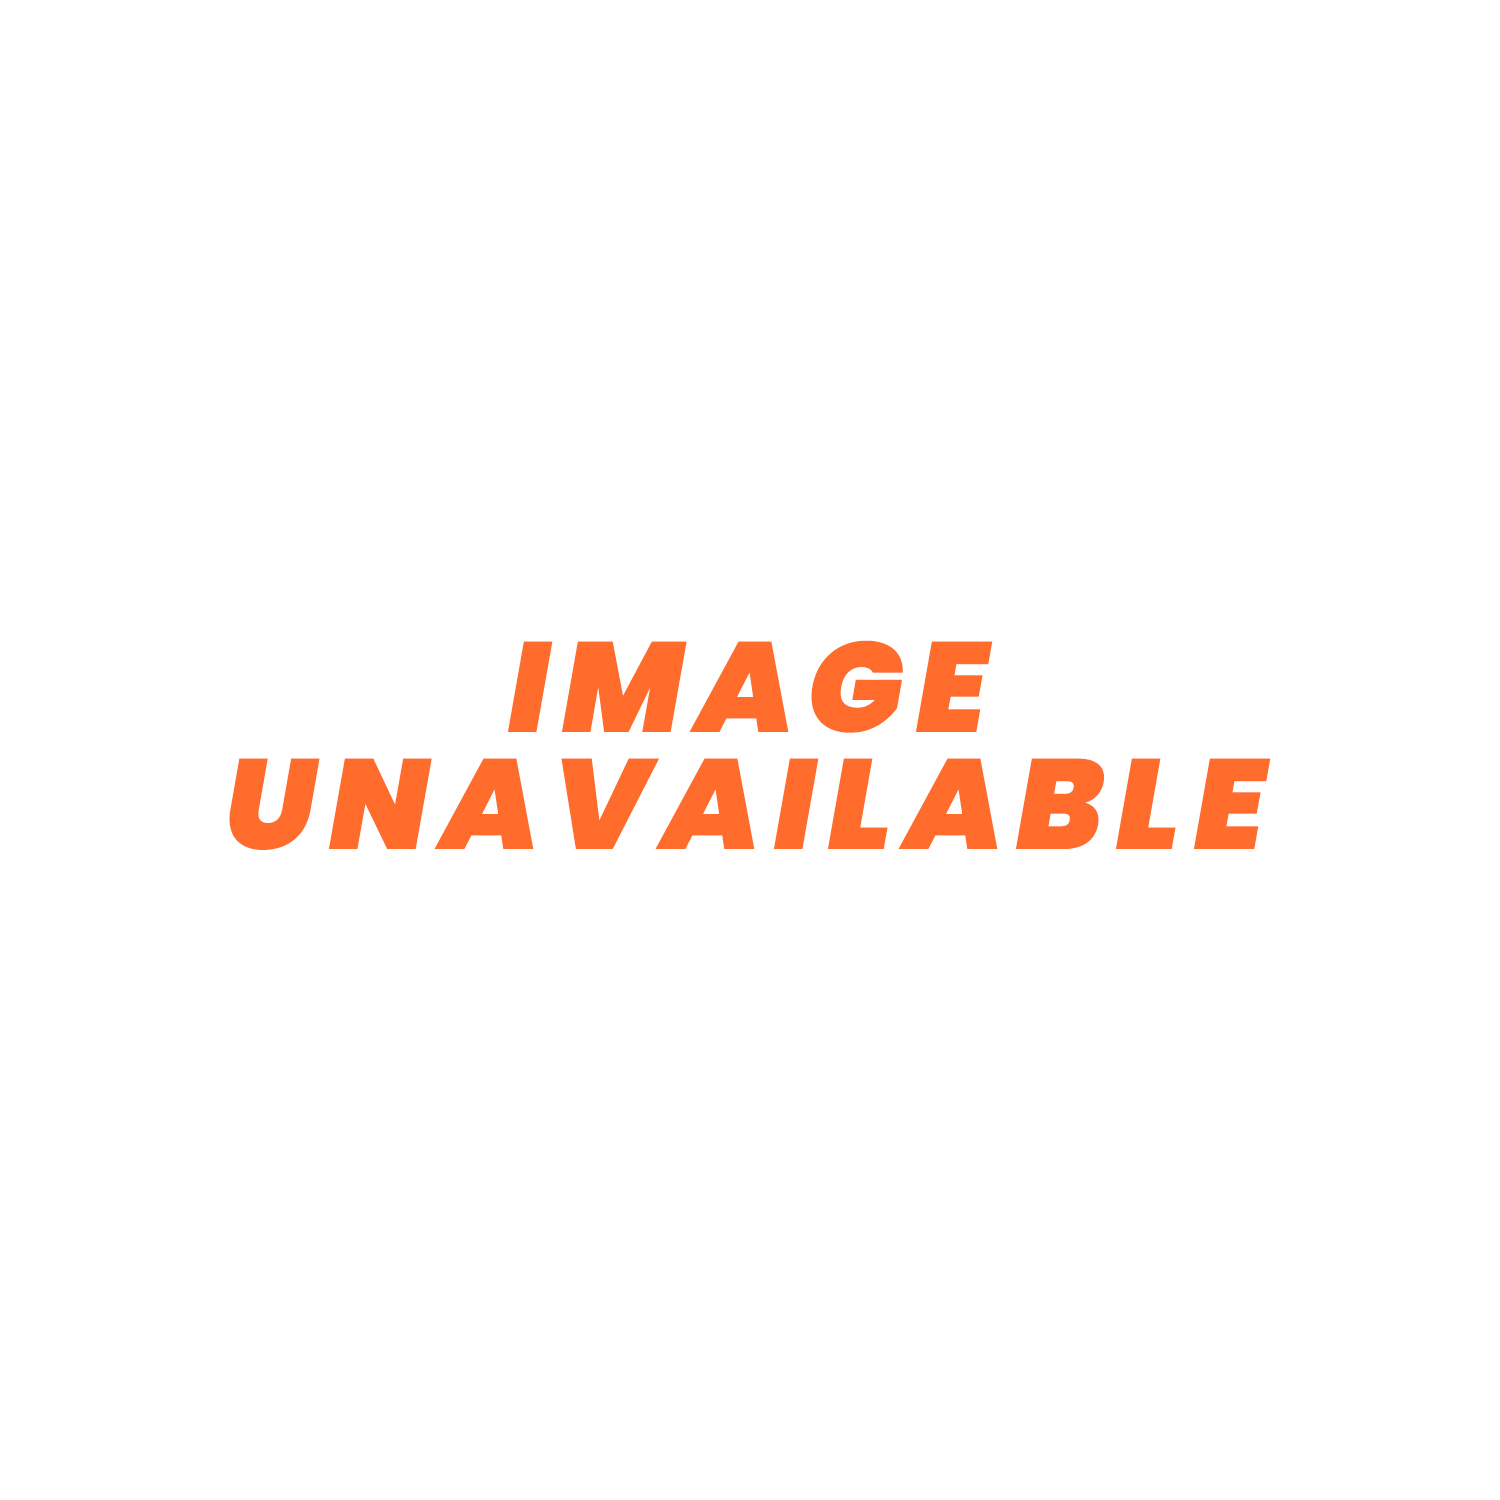 "SPAL Radiator Fan - 9.0"" (225mm) Push VA07-AP7/C-31S 673cfm"